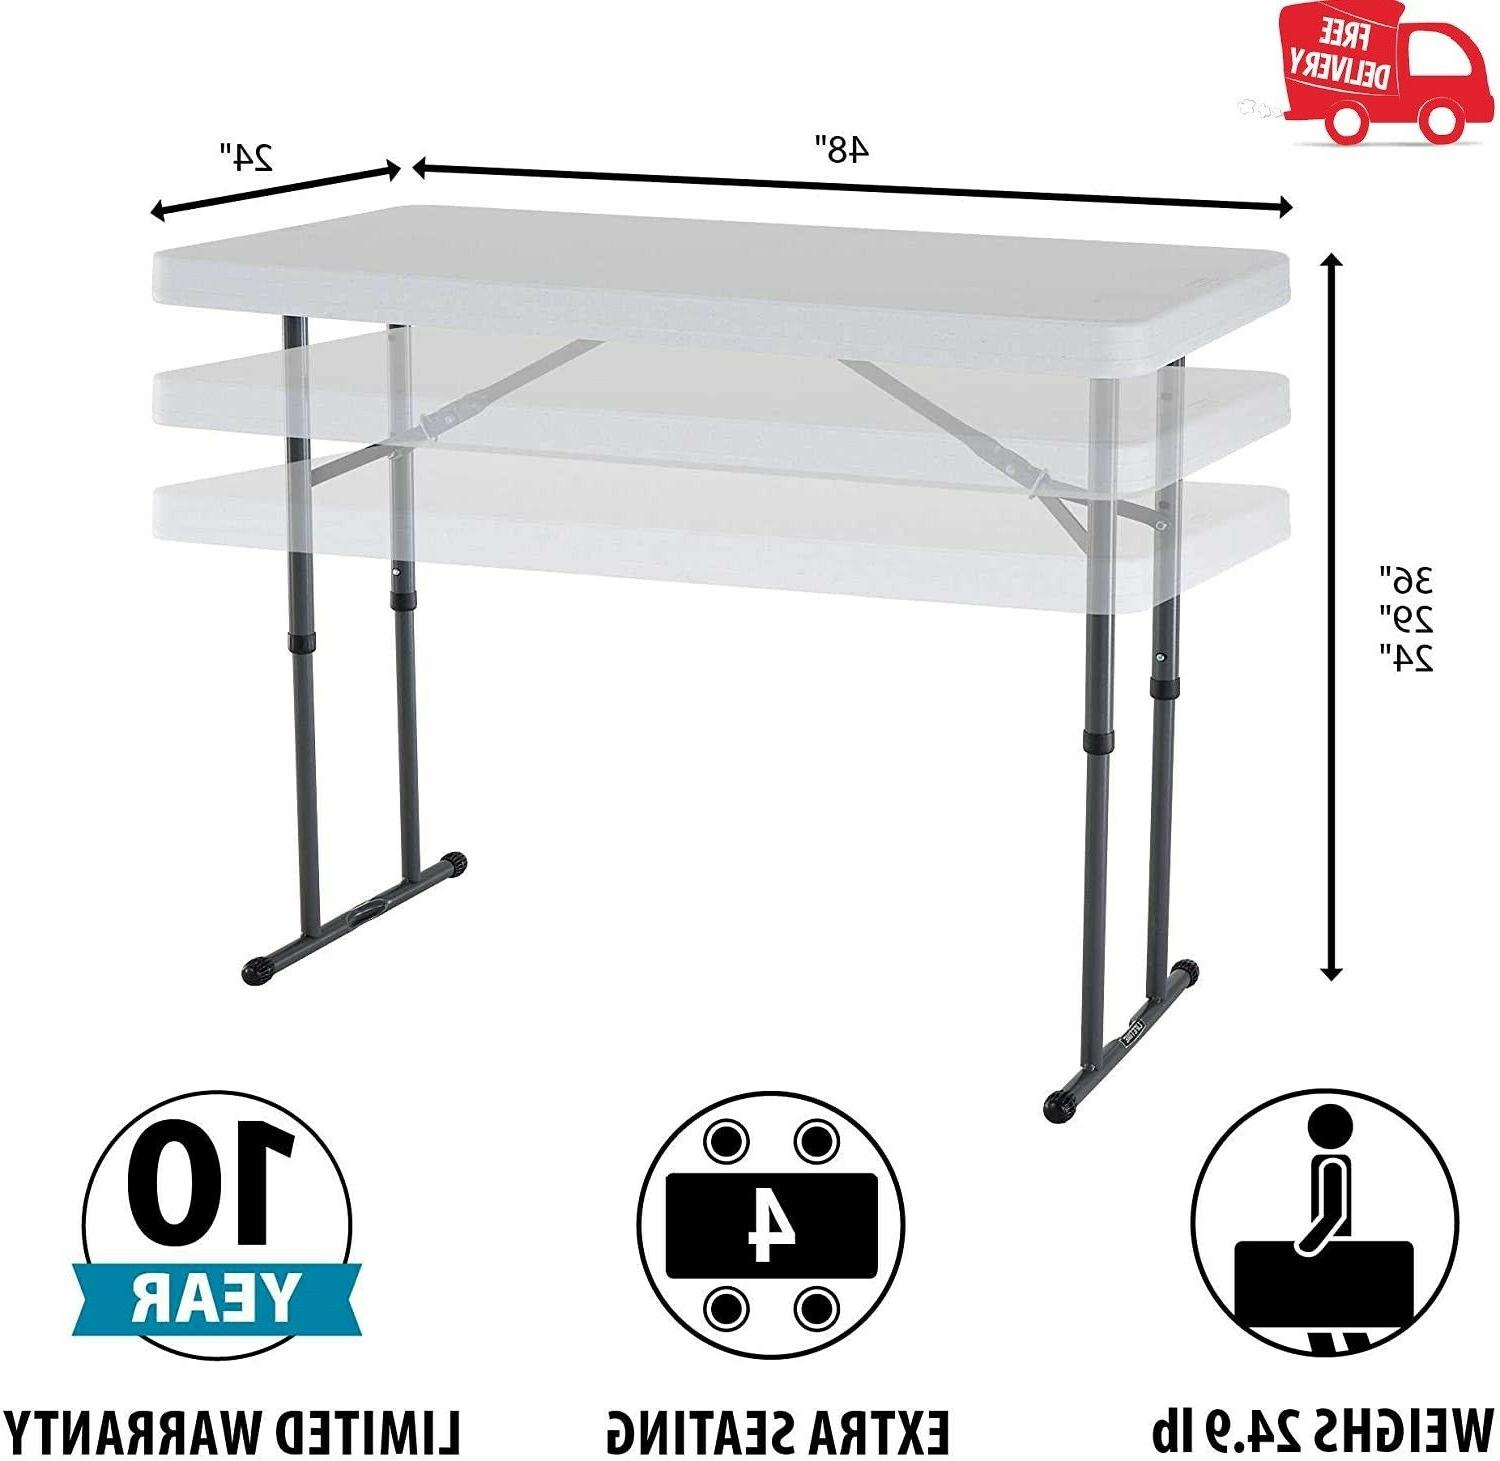 Lifetime 80160 Commercial Height Adjustable Utility Table, 4 Feet, White